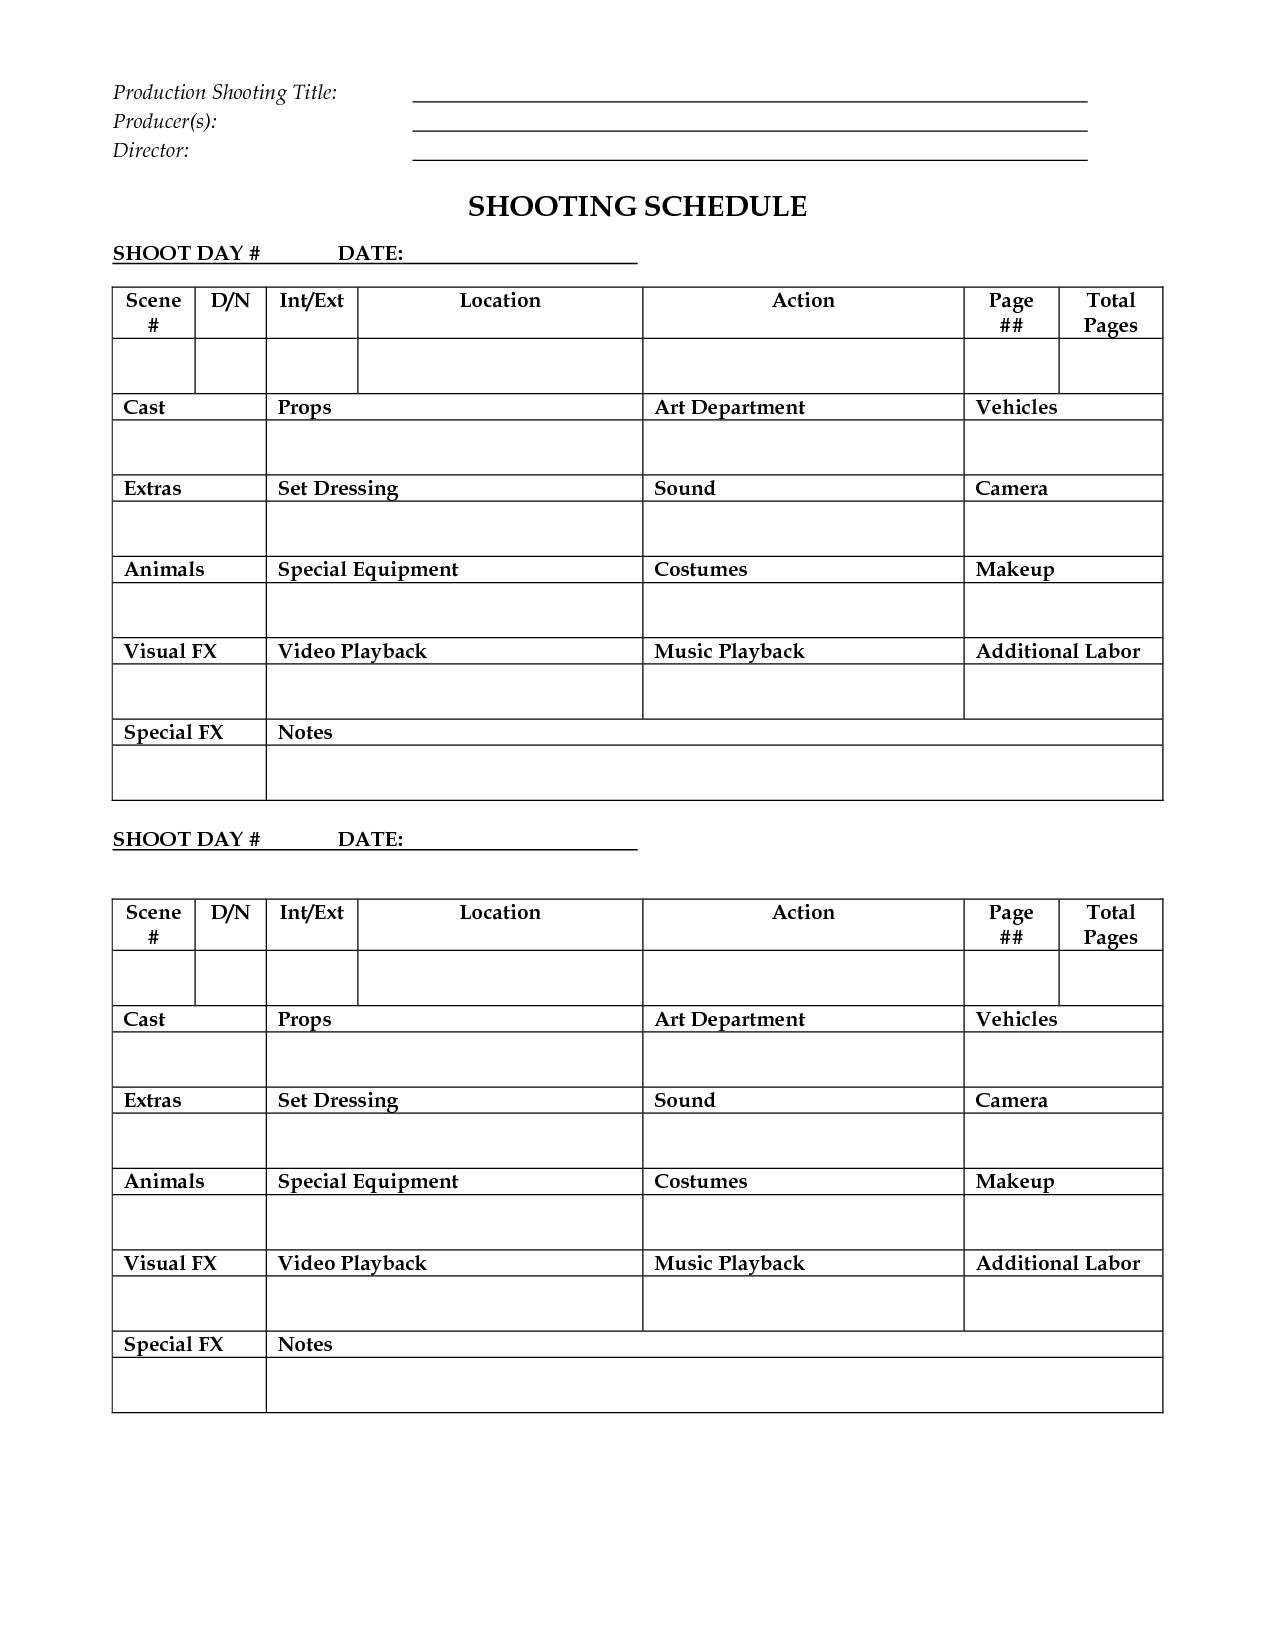 documentary production schedule template - shooting schedule template 72 hour filmfest in 2018